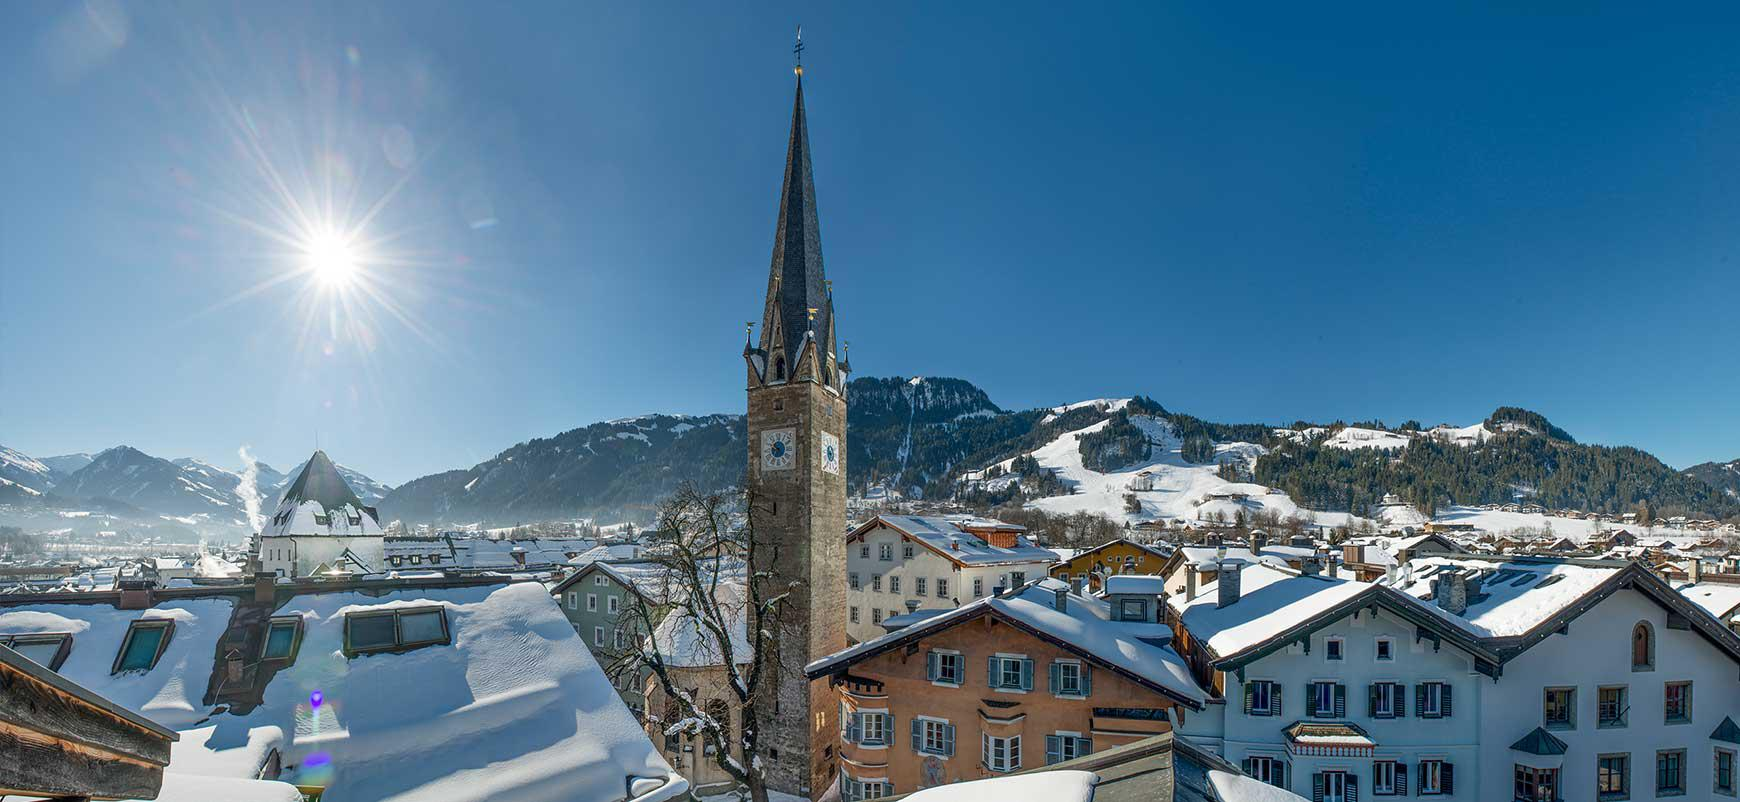 Popular Hotel in finest location in Kitzbuehel for Sale - Tirol - Austria